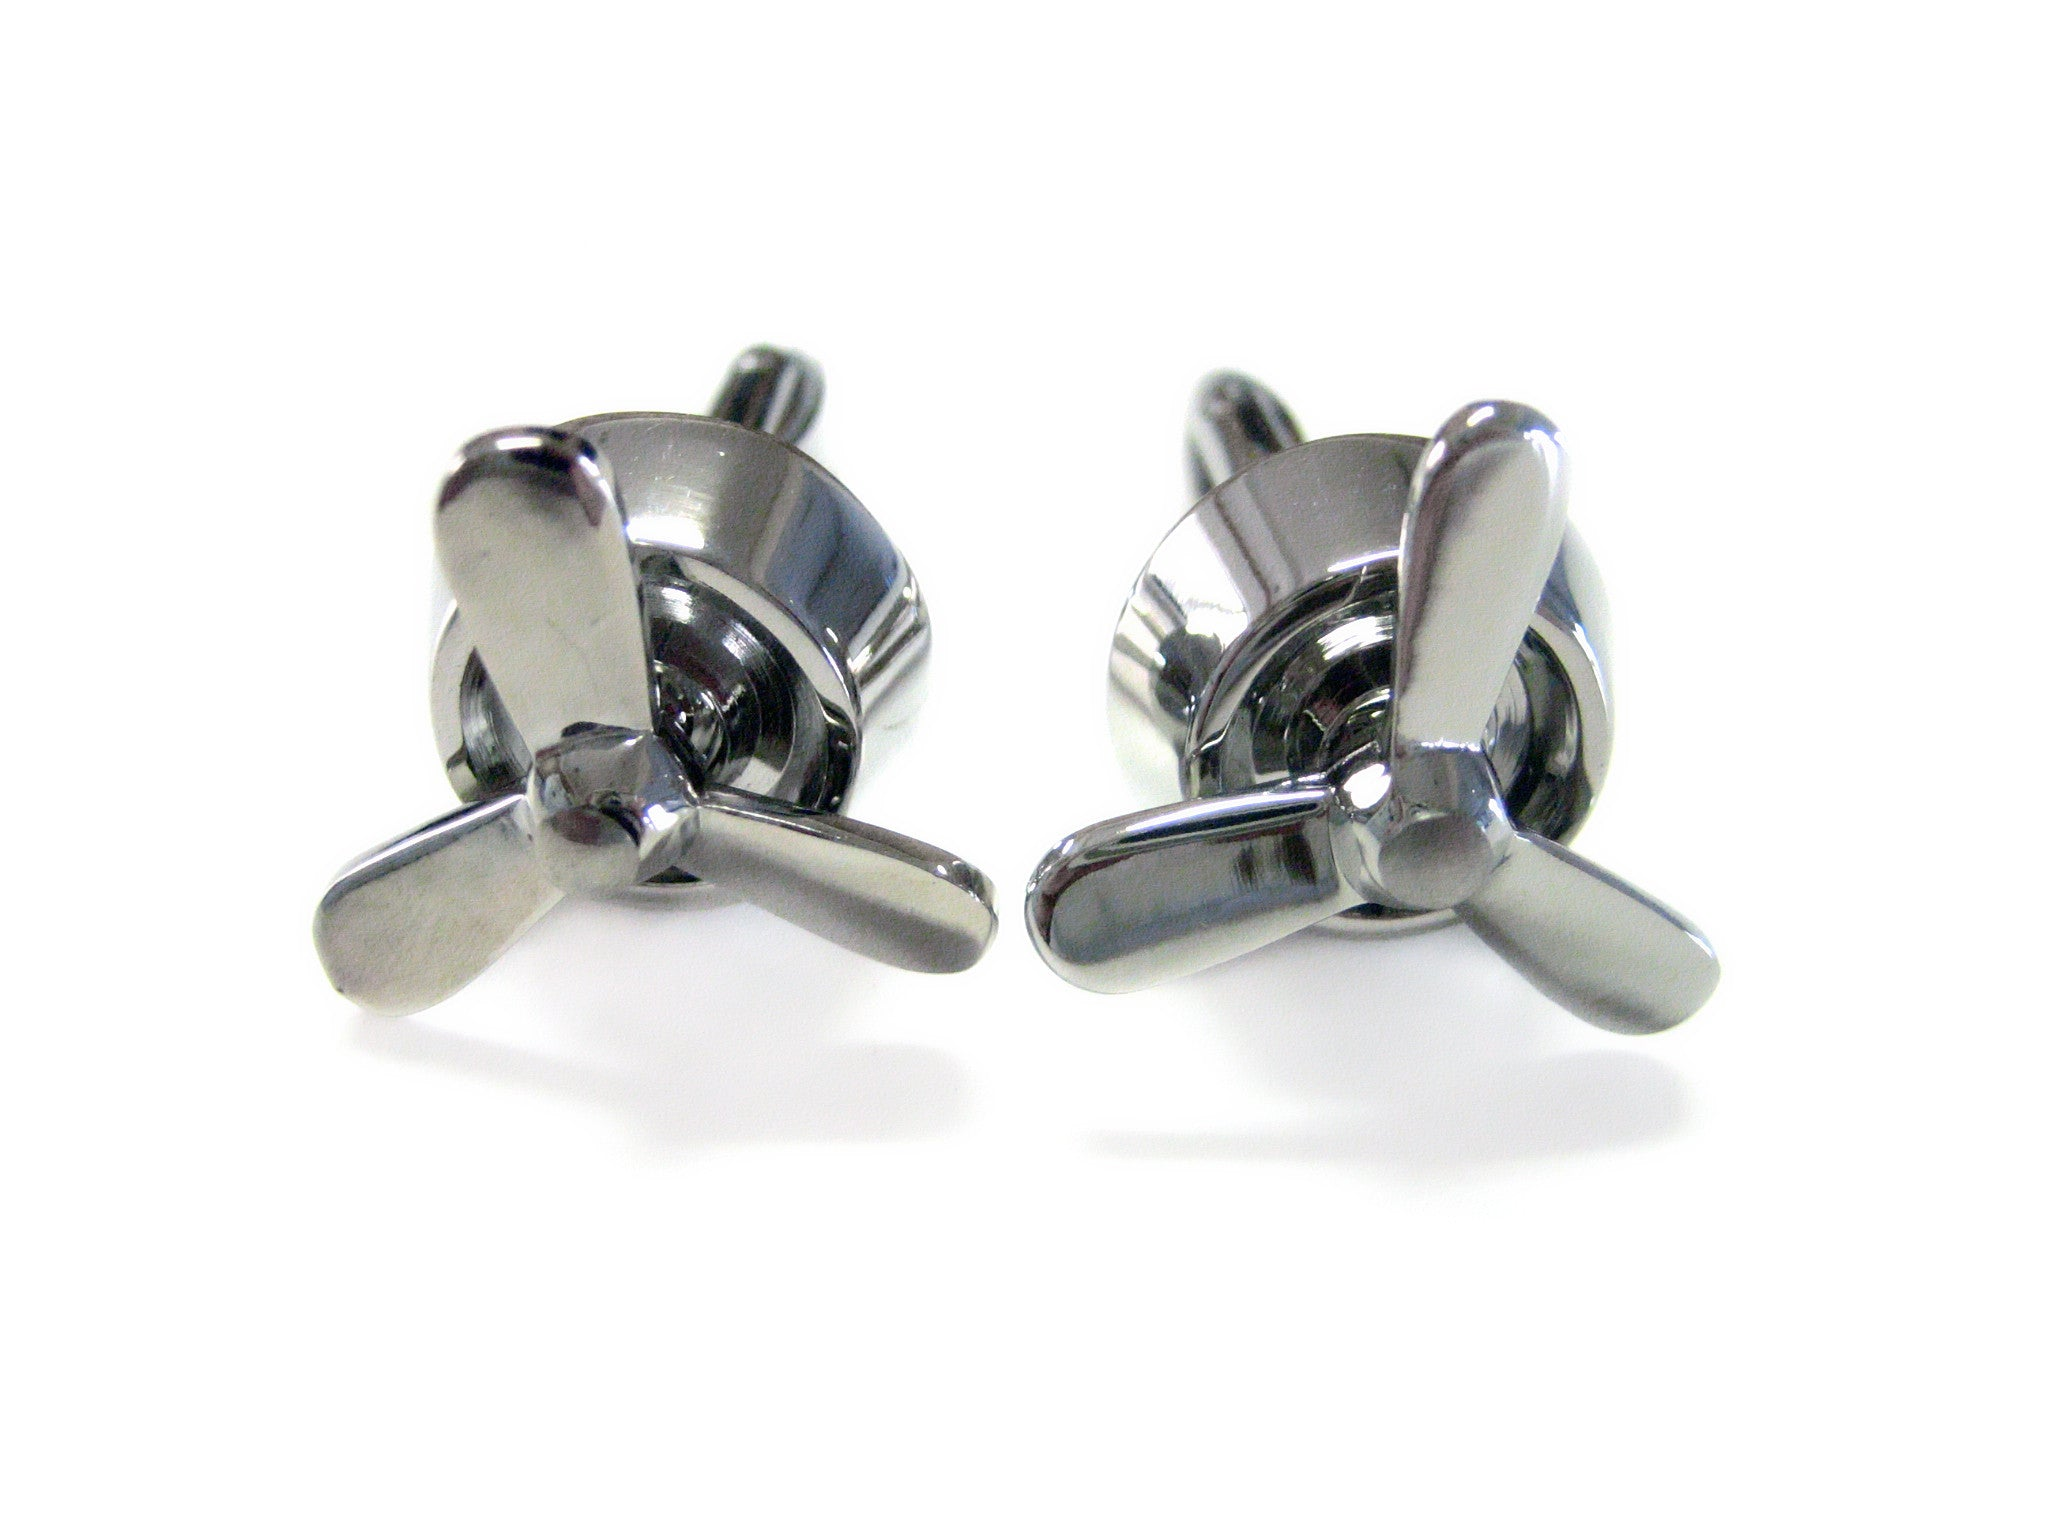 Silver Toned Propellor Cufflinks